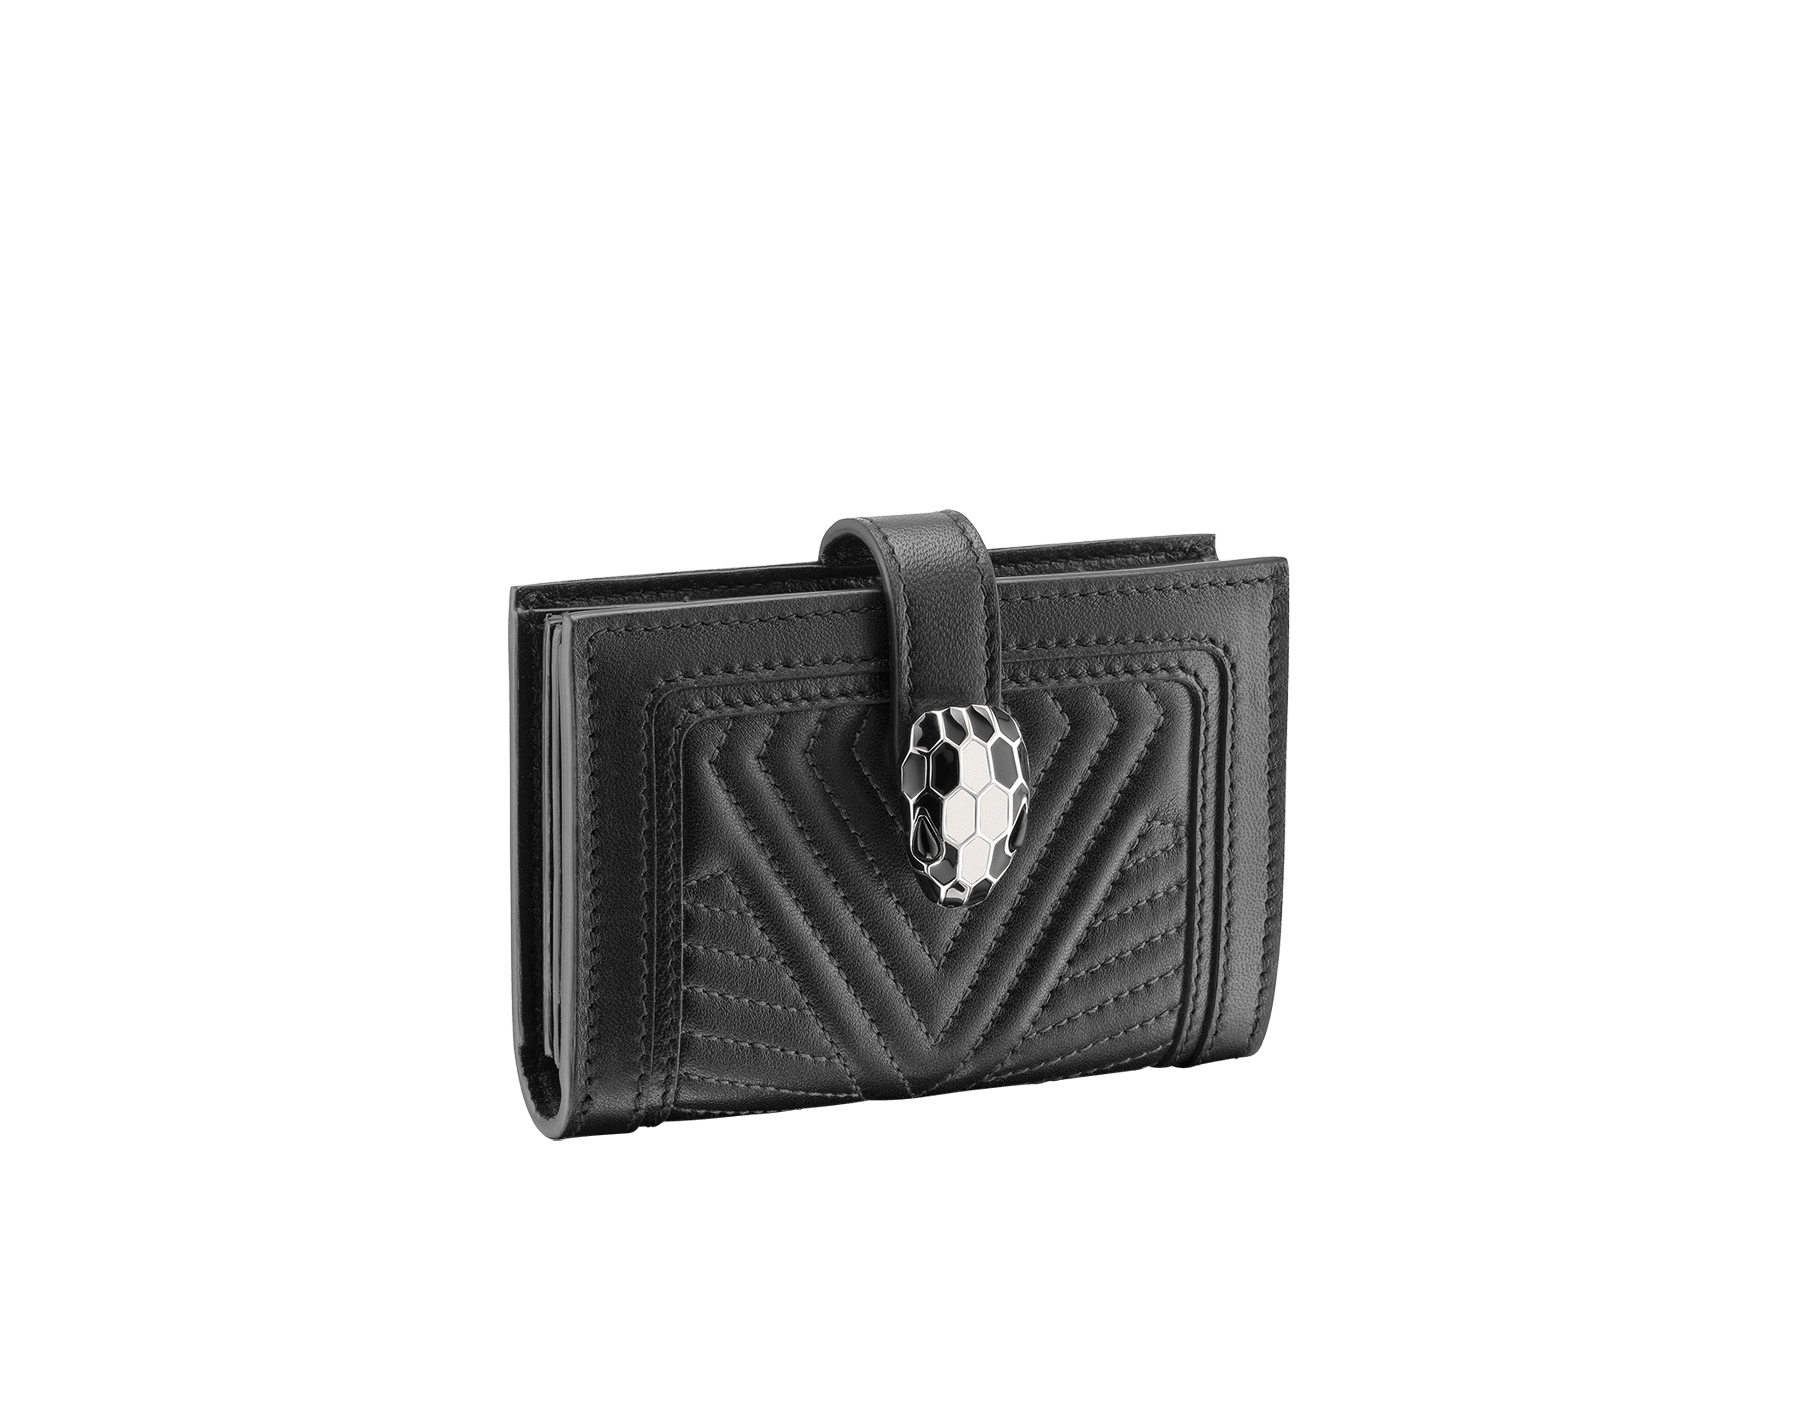 Serpenti Diamond Blast compact credit card holder in black matelassé nappa leather and black calf leather. Snakehead closure with black and white enamel and black enamel eyes. 288193 image 1